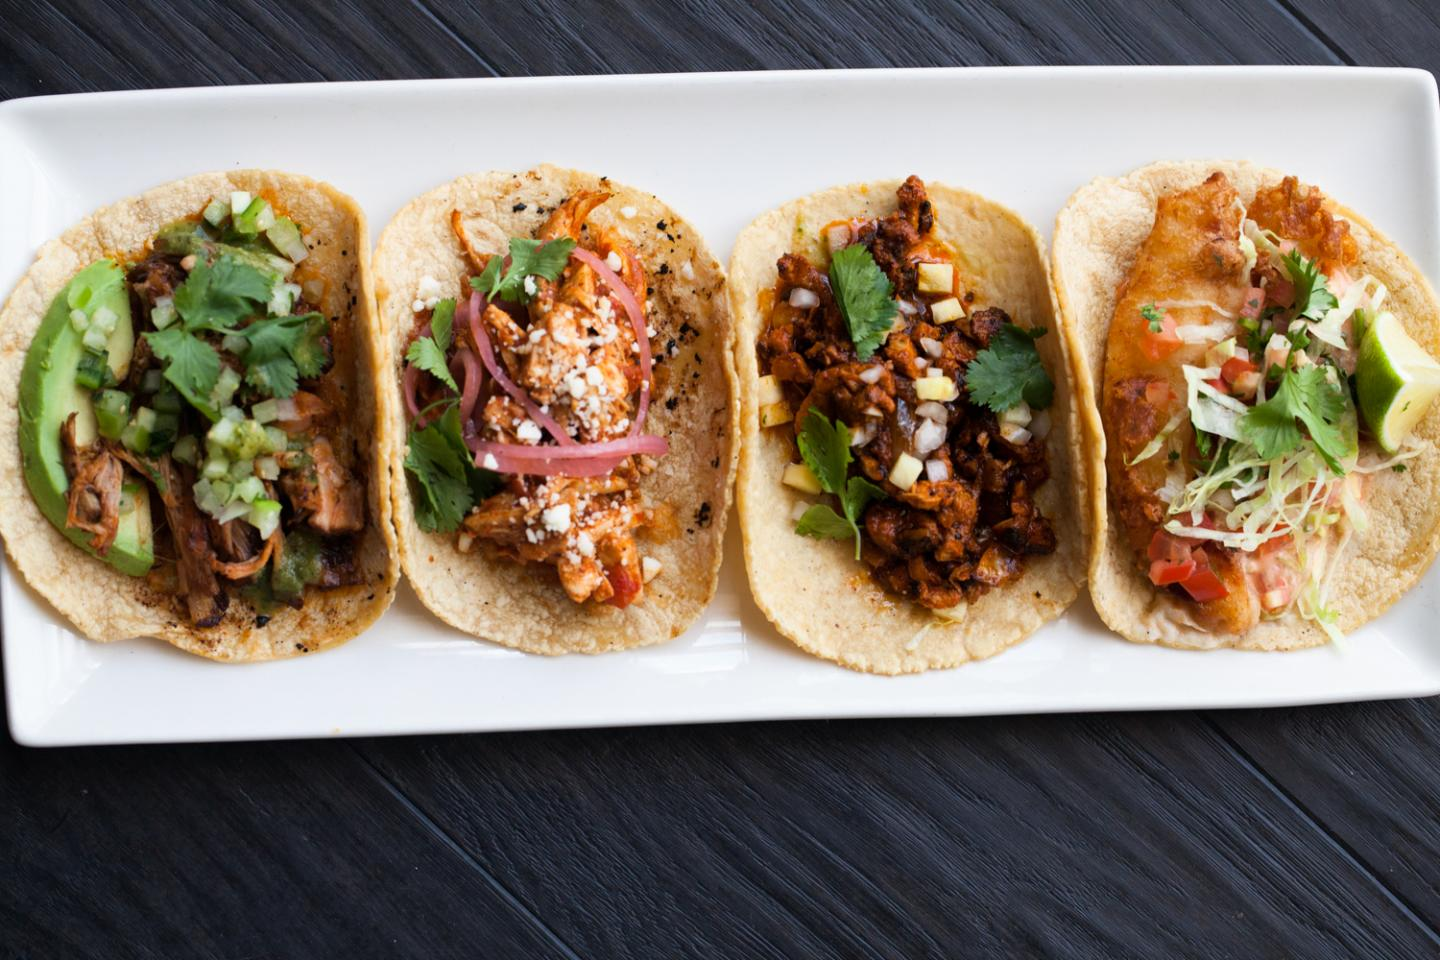 image of four tacos on a plate from Tallboy Taco